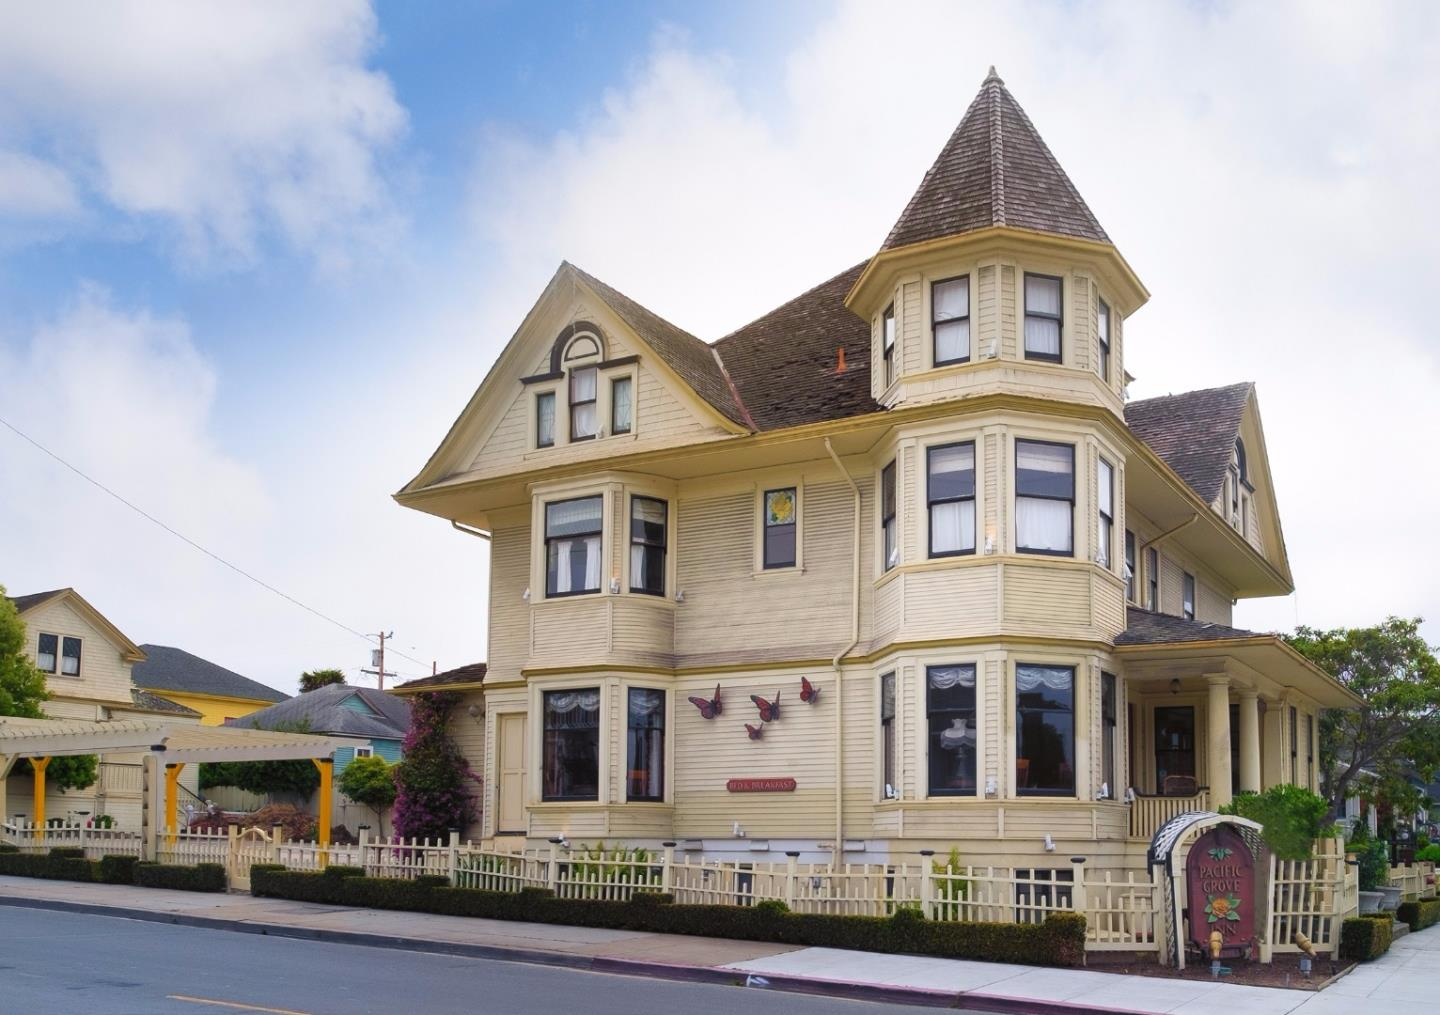 Commercial for Sale at 581 Pine Avenue Pacific Grove, California 93950 United States